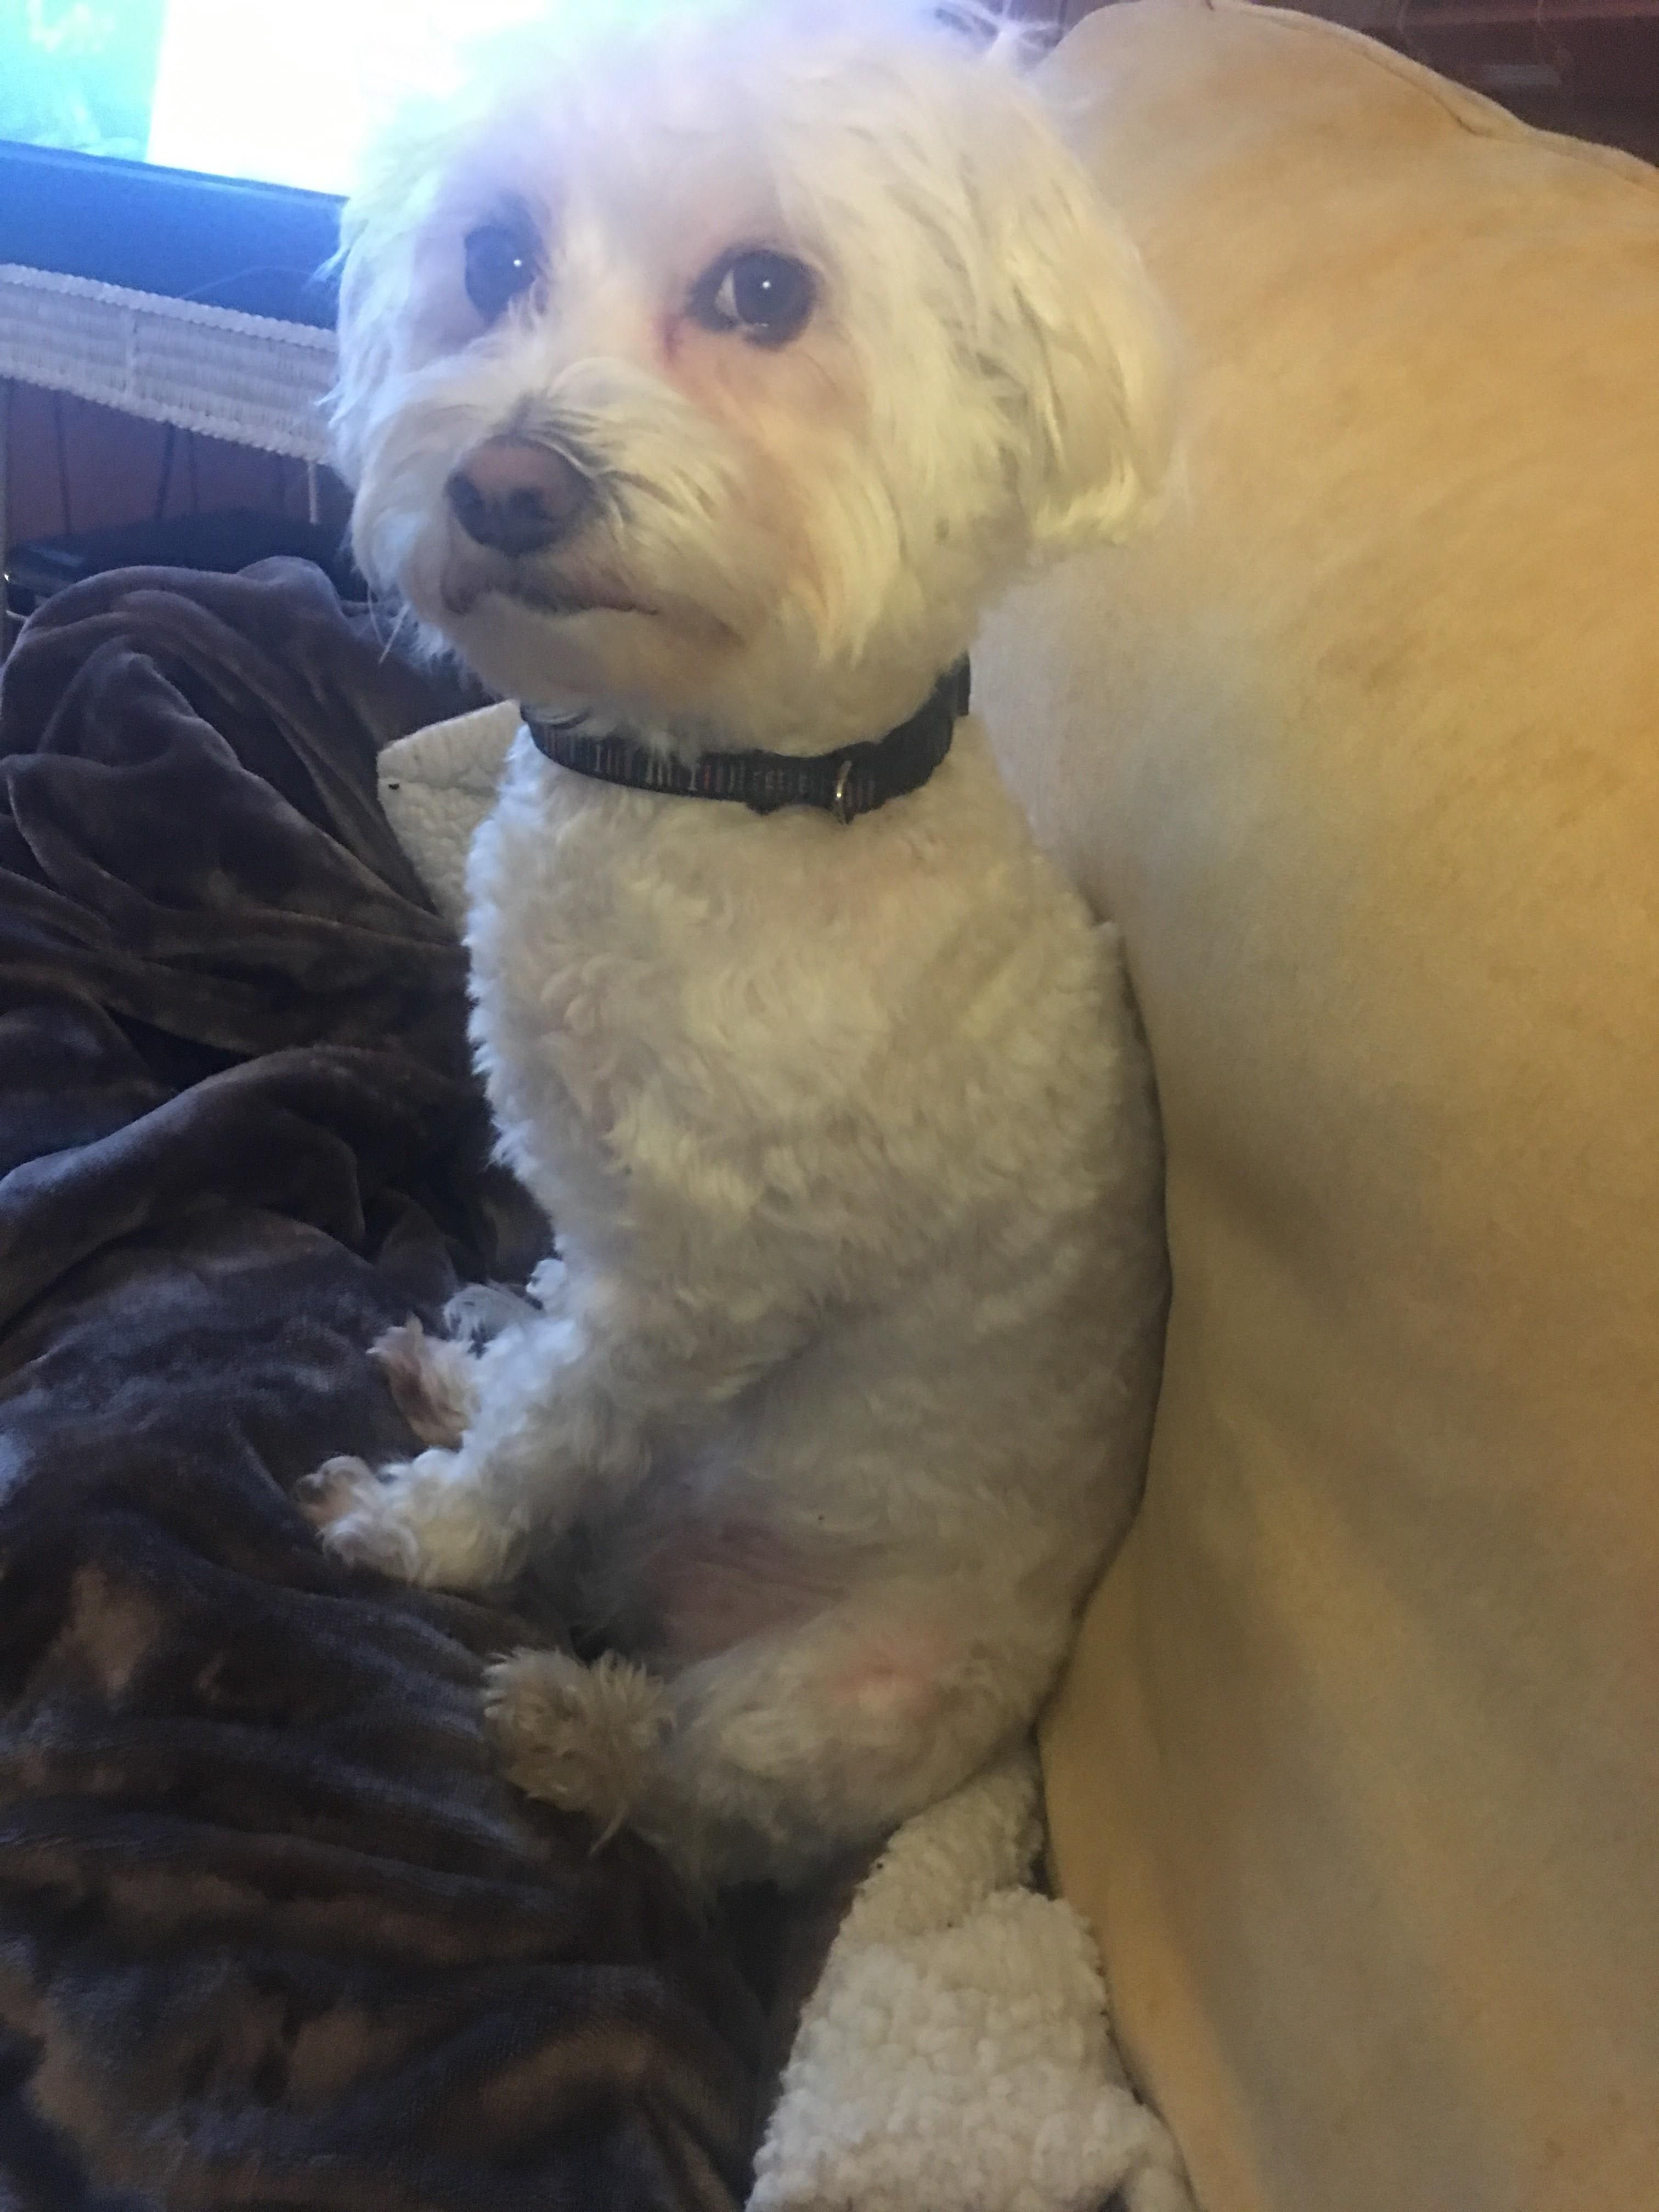 Sitting Up Like A Proper Human #Dogpictures #Dogs #Aww #Cuteanimals